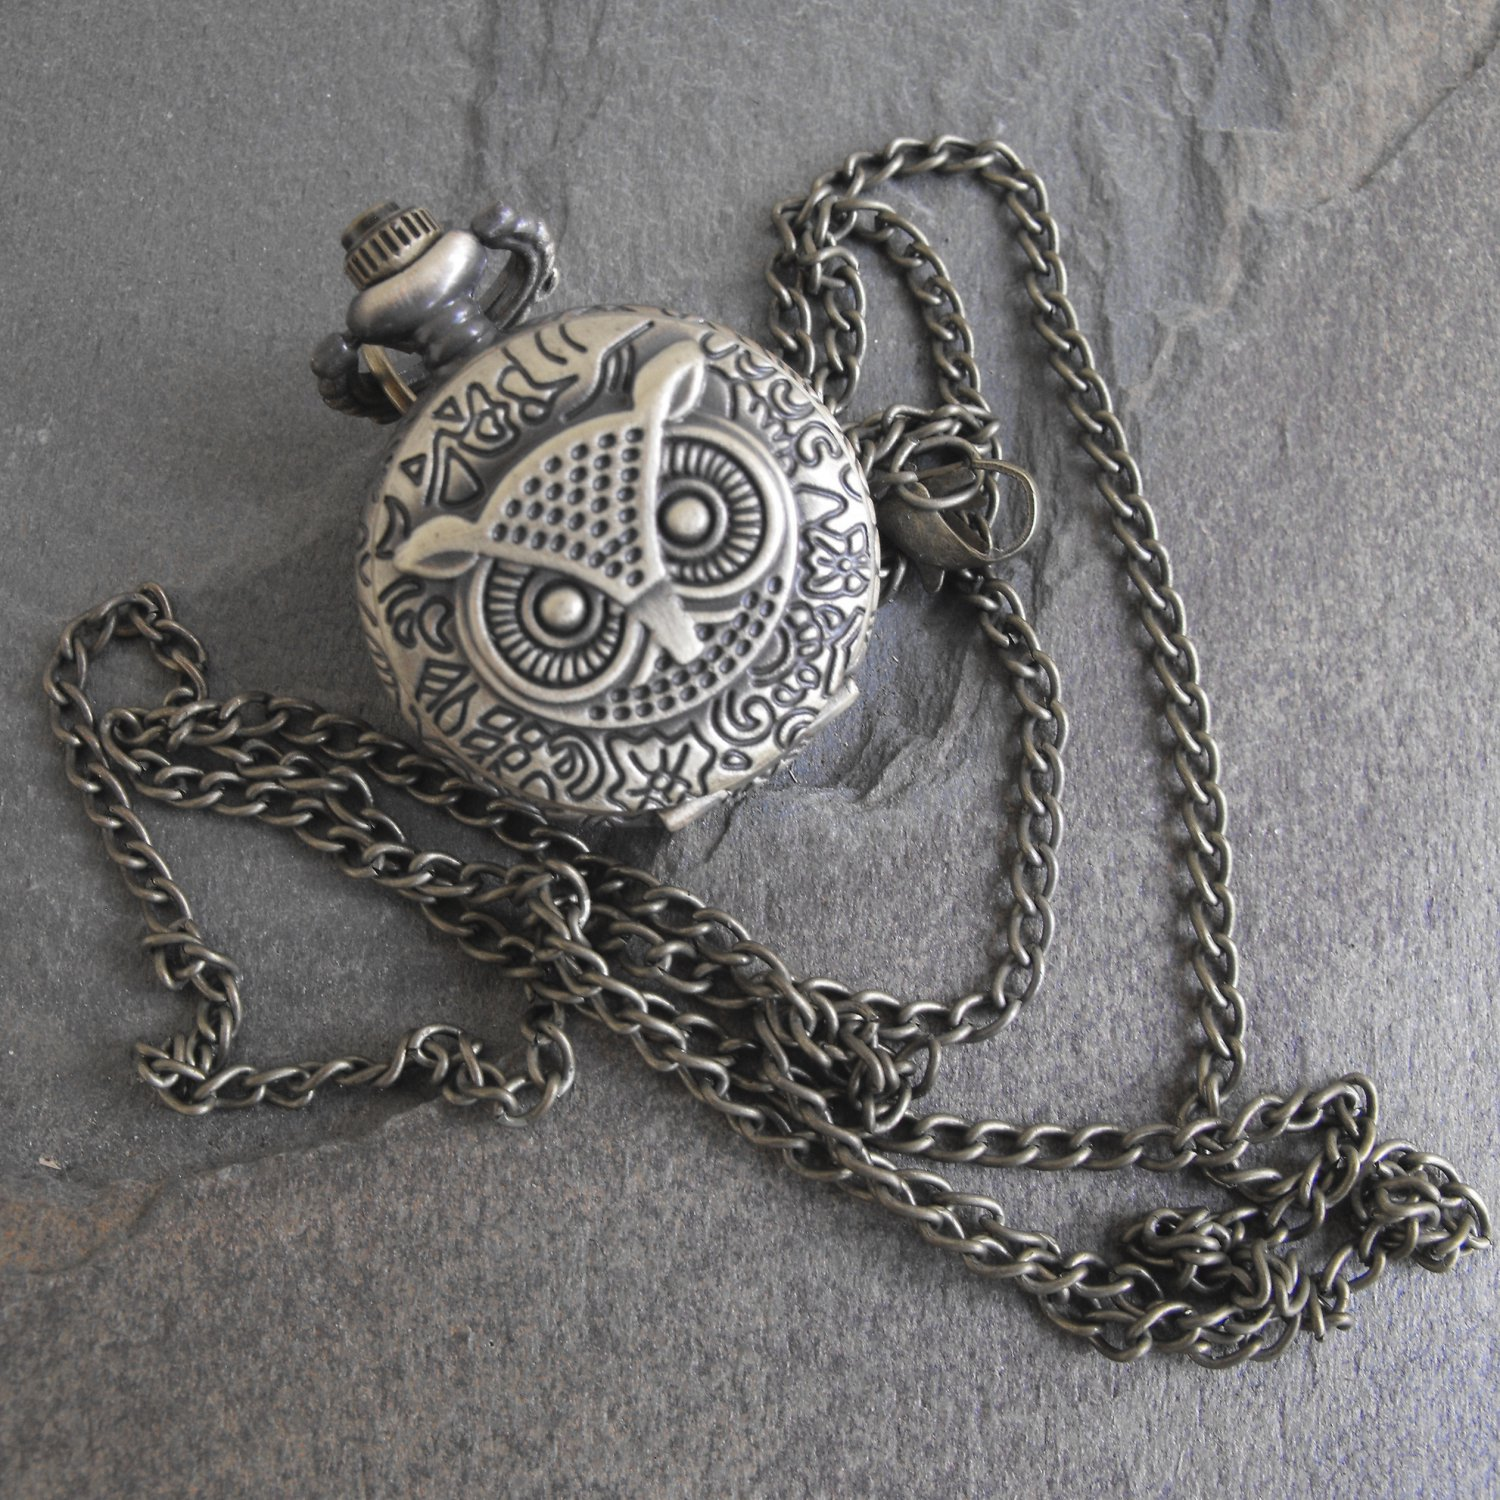 Antique Copper Owl Pendant Timepiece With Chain